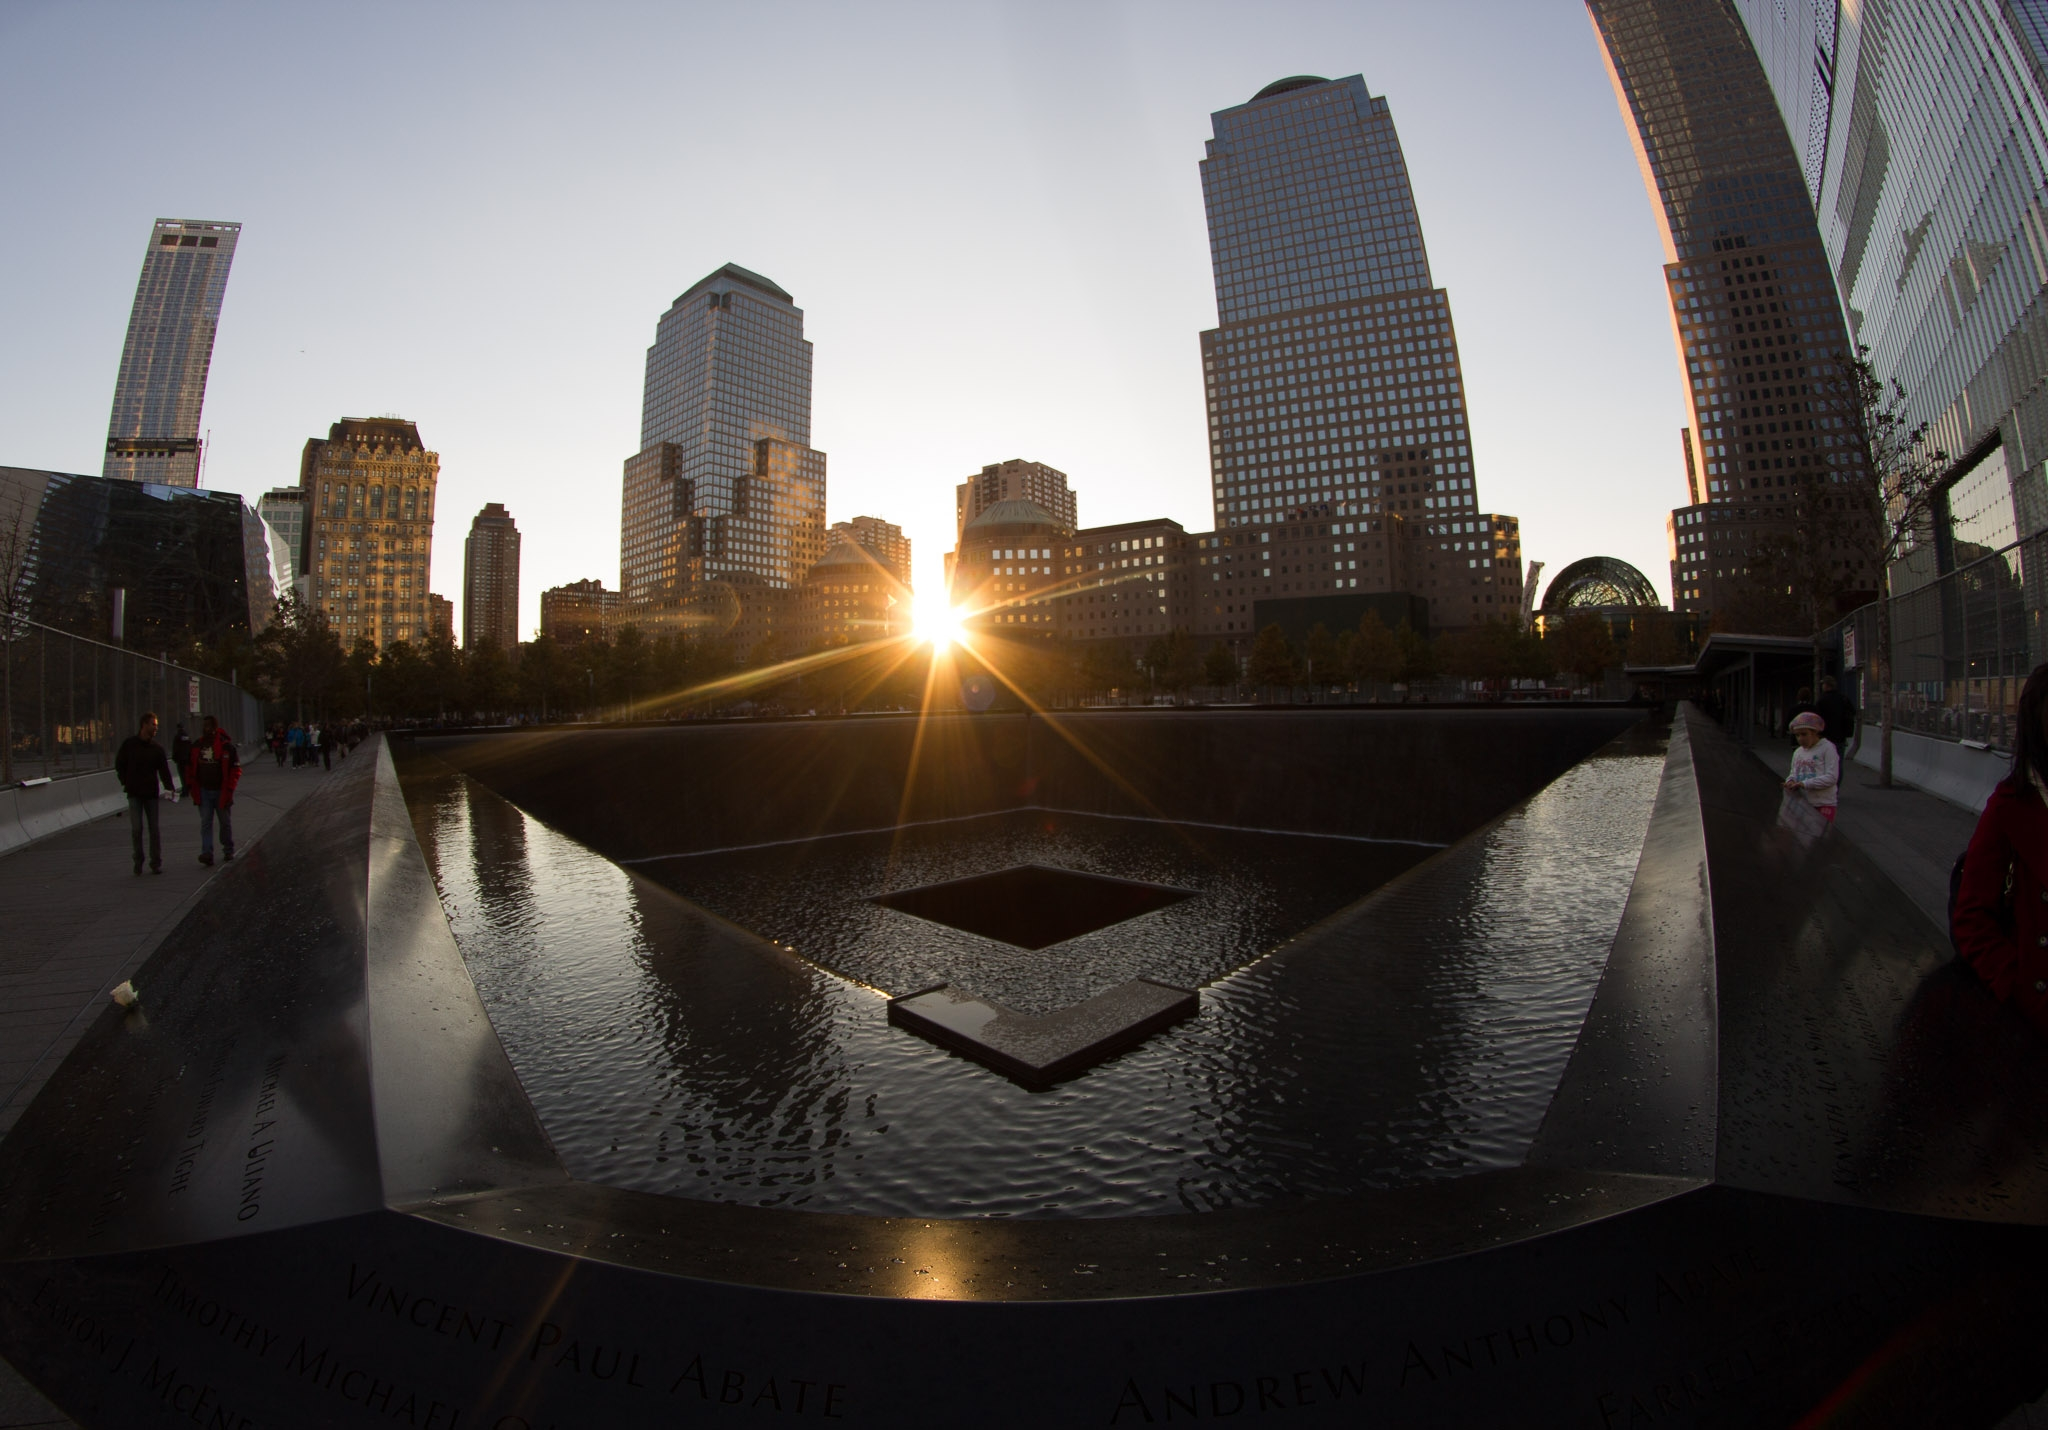 sunset-at-9/11-world-trade-center-memorial